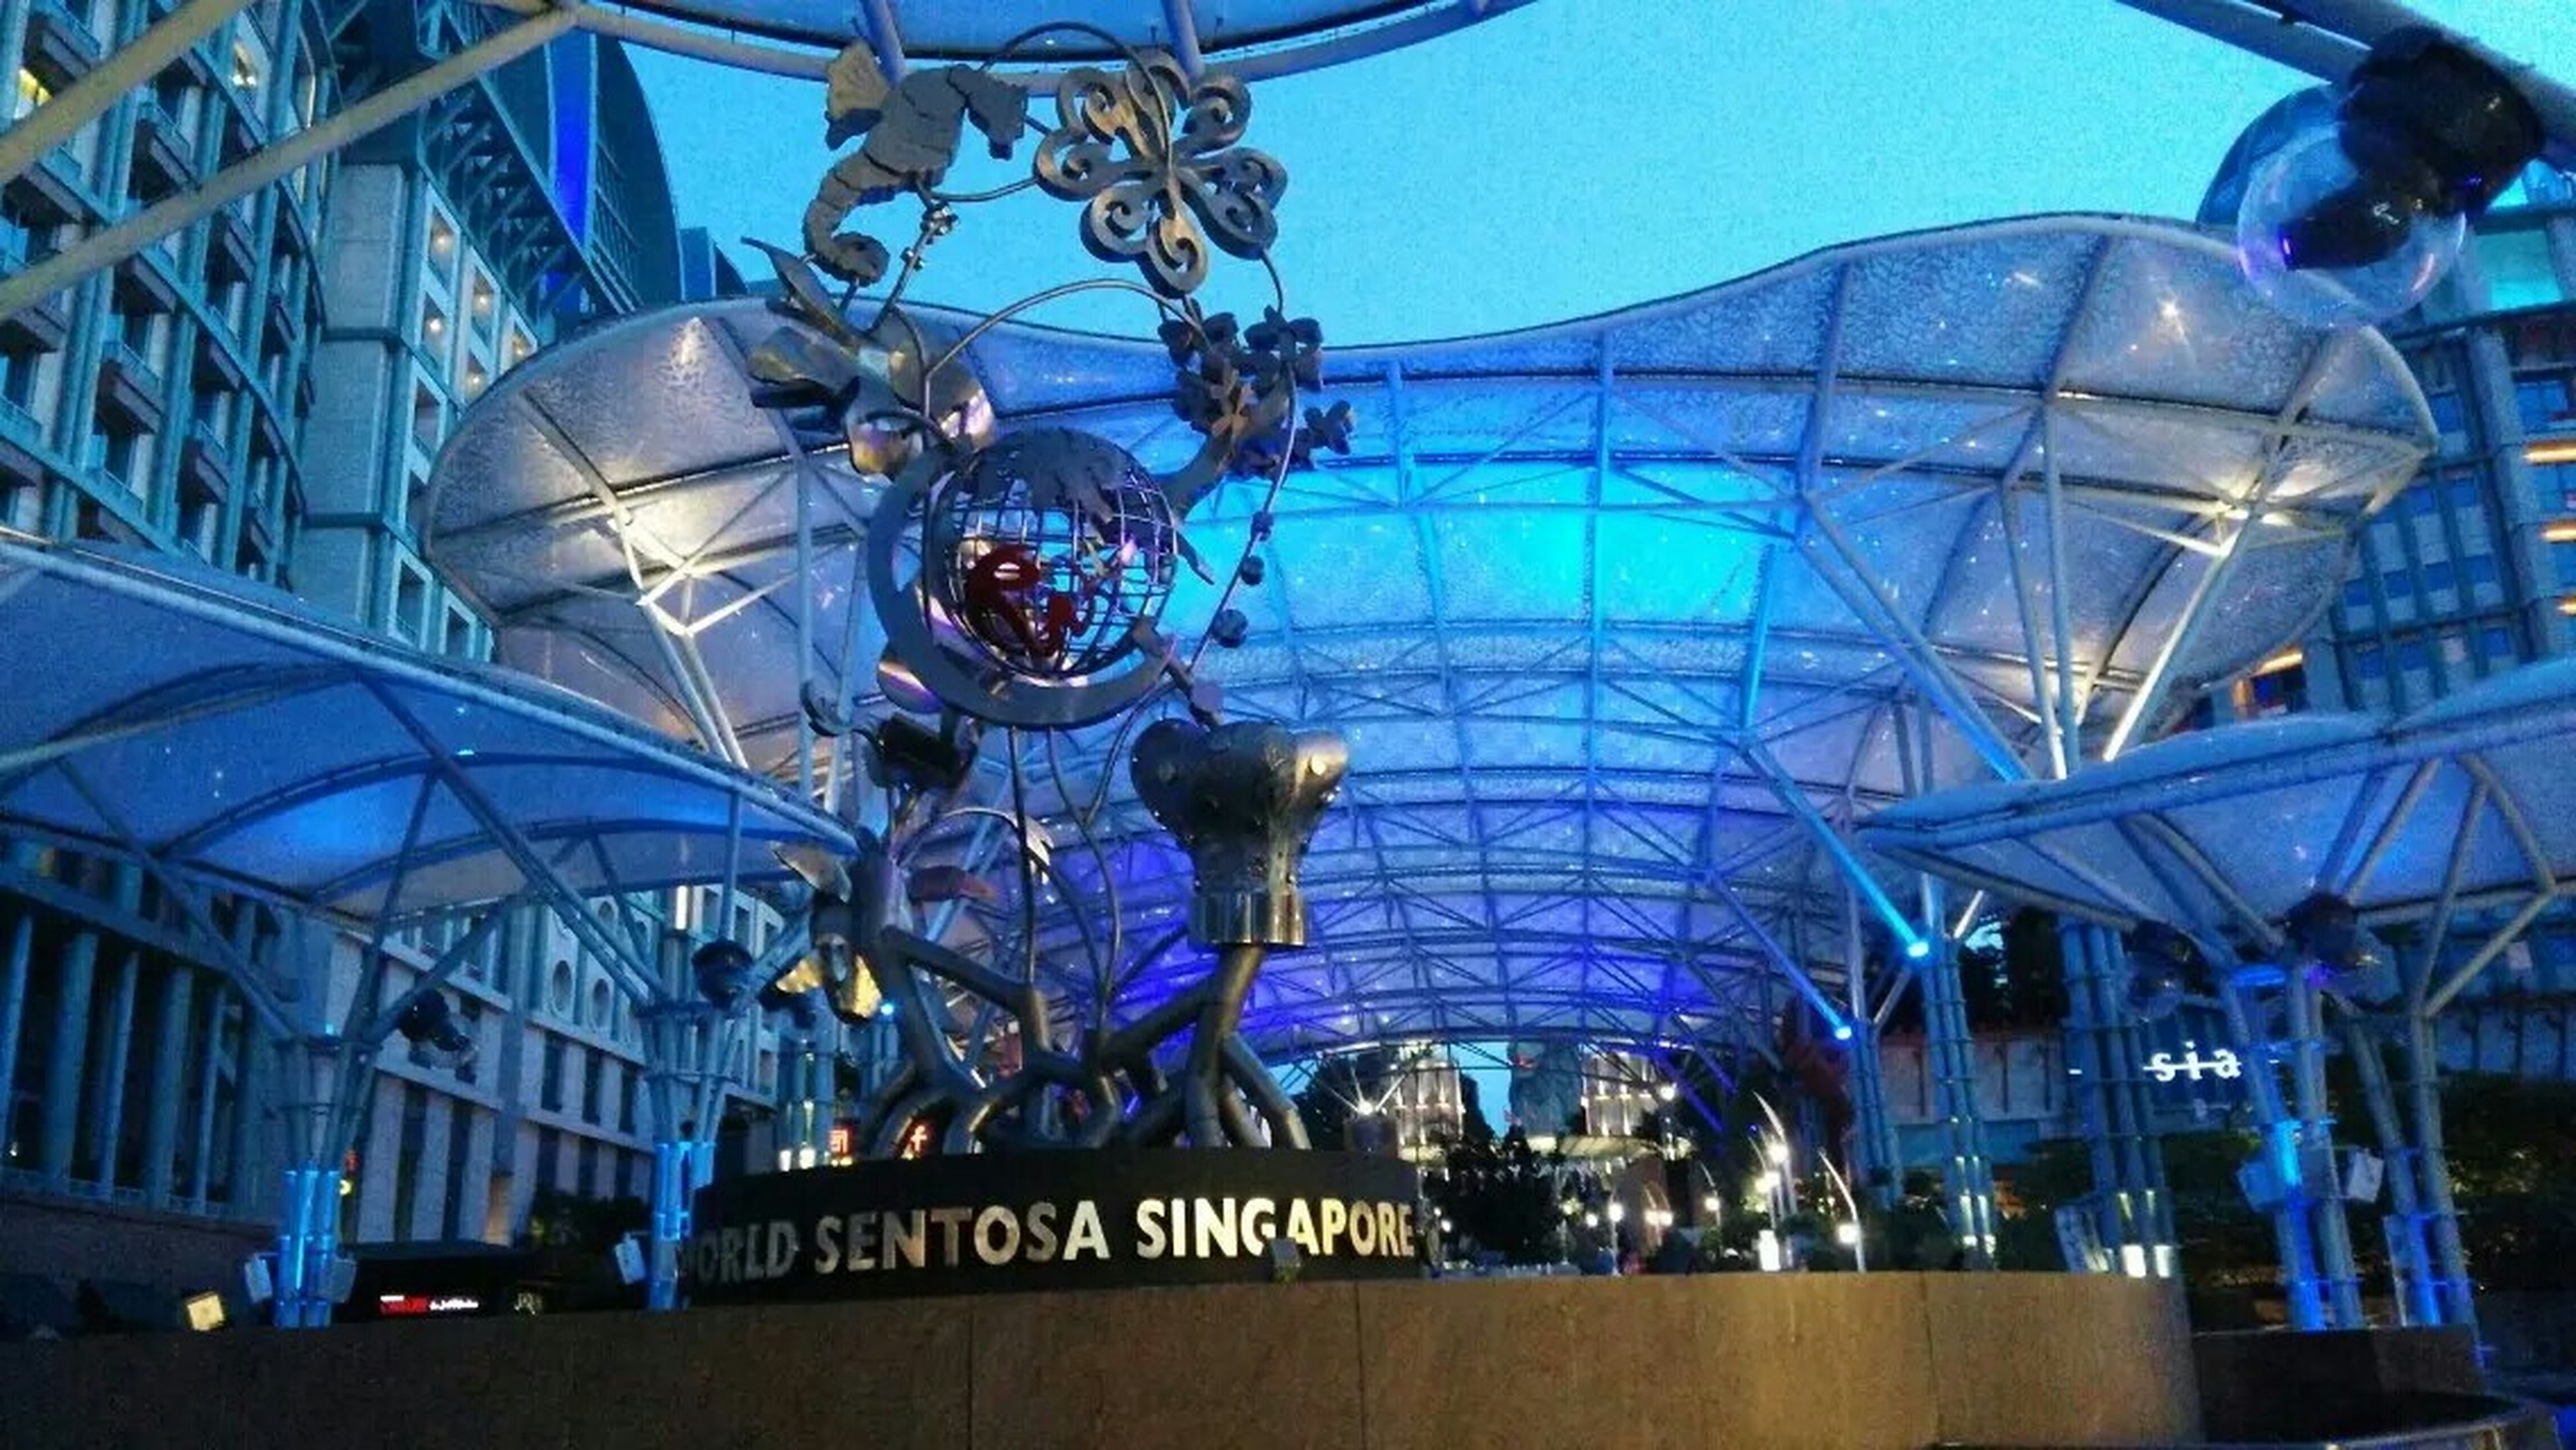 built structure, architecture, low angle view, transportation, lighting equipment, illuminated, building exterior, blue, indoors, amusement park ride, ceiling, amusement park, mode of transport, modern, travel, city, ferris wheel, incidental people, arts culture and entertainment, hanging